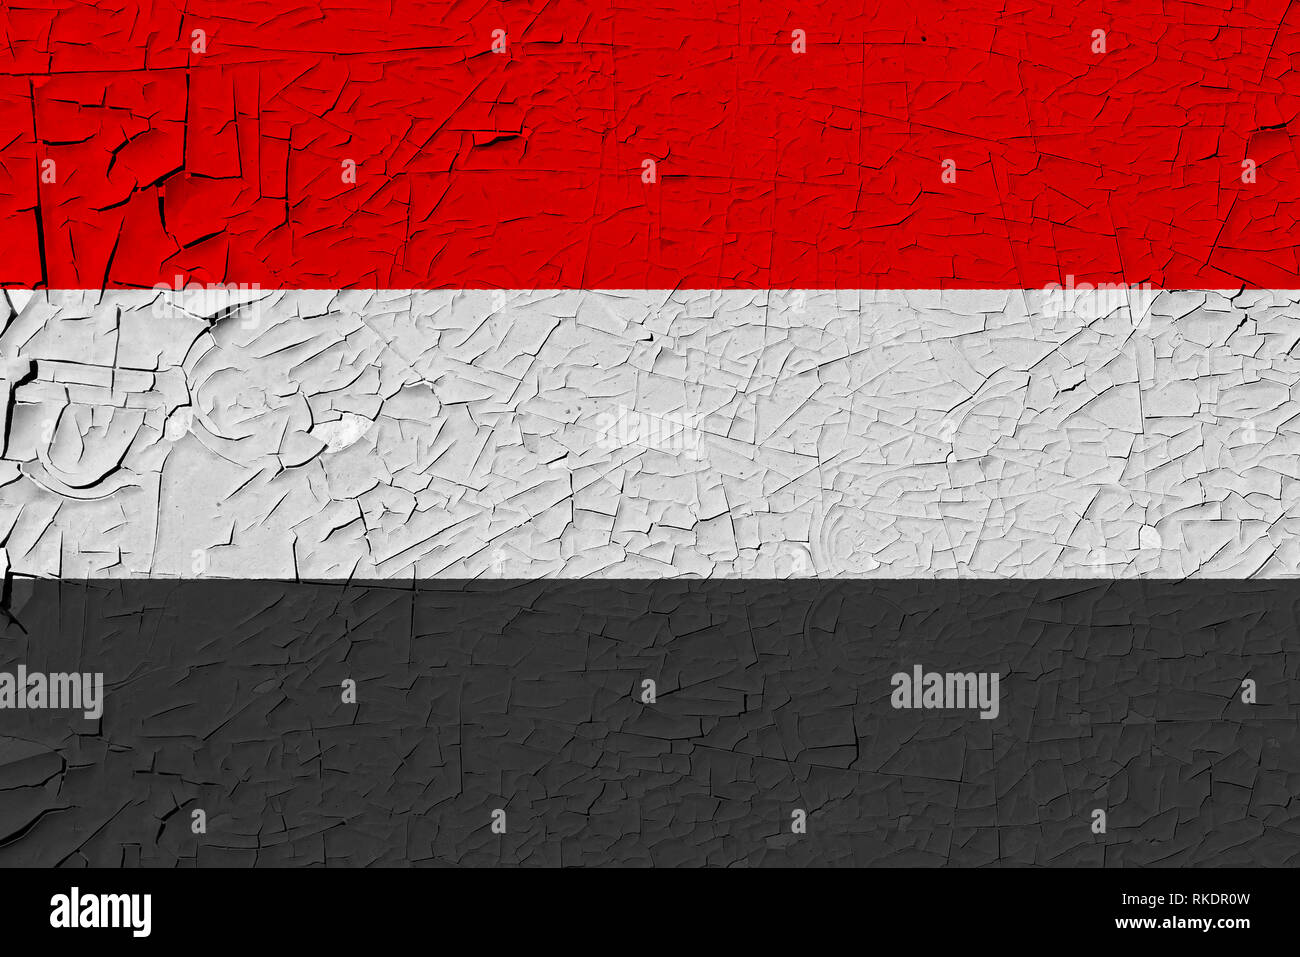 yemen painted flag - Stock Image